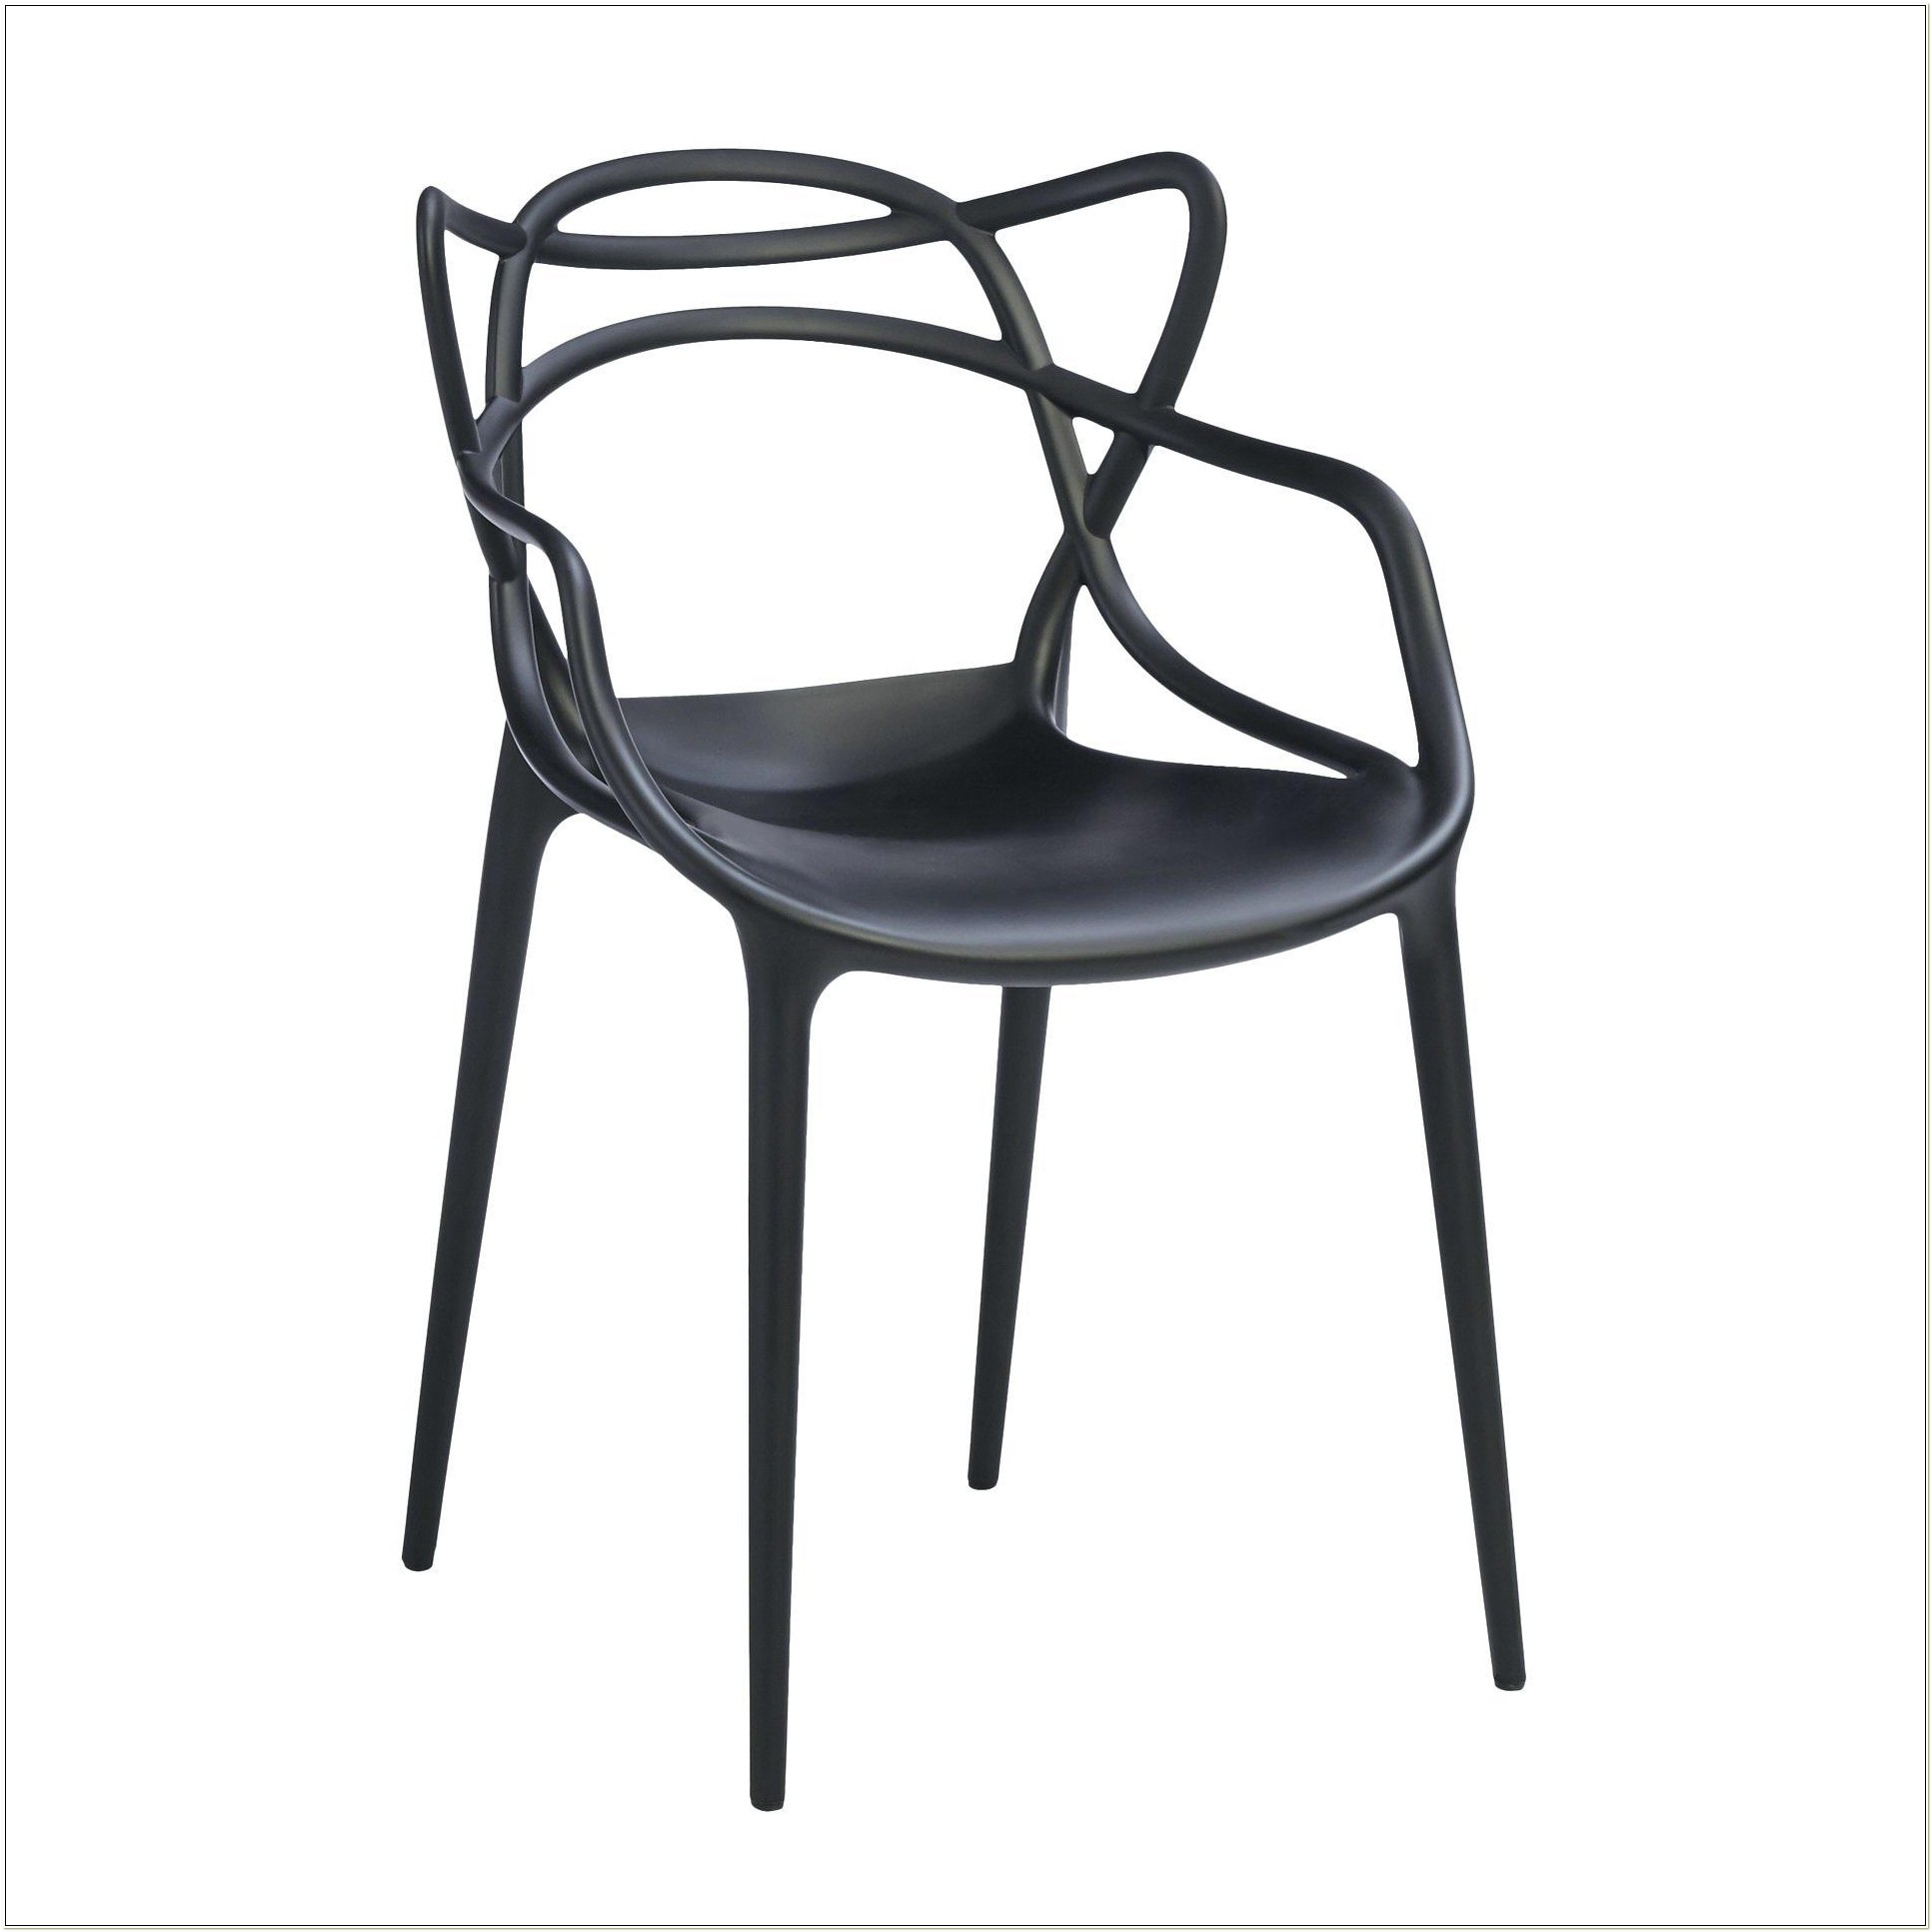 Philippe Starck Outdoor Chairs Nz